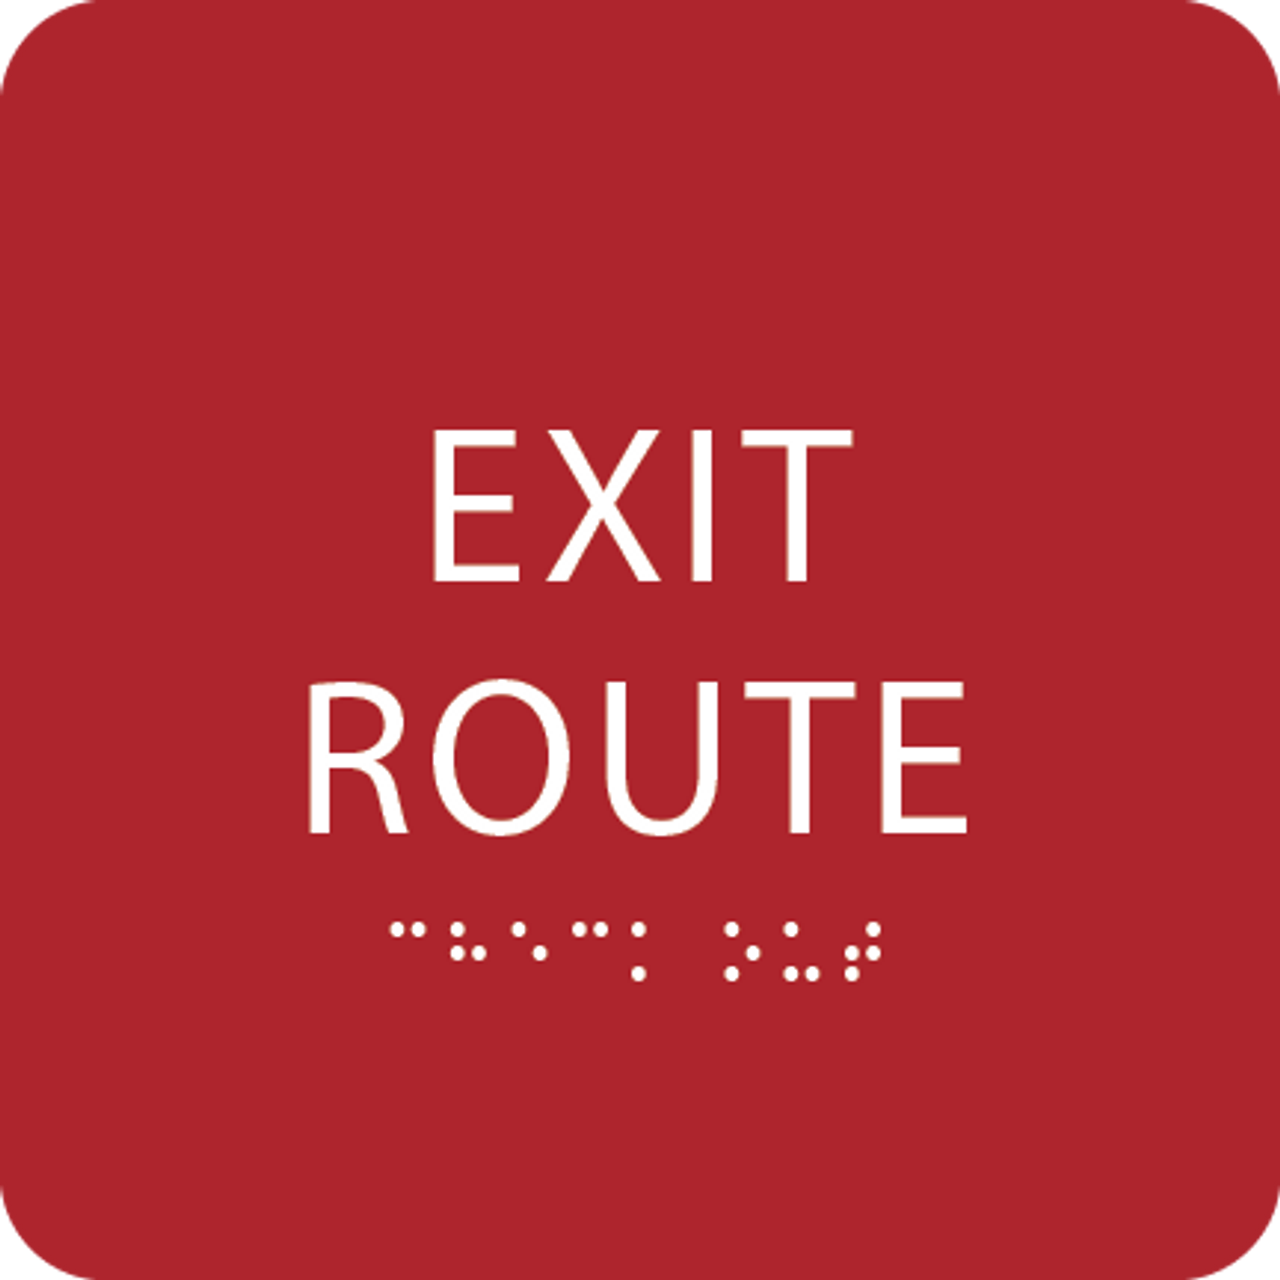 Red Tactile Exit Route Sign